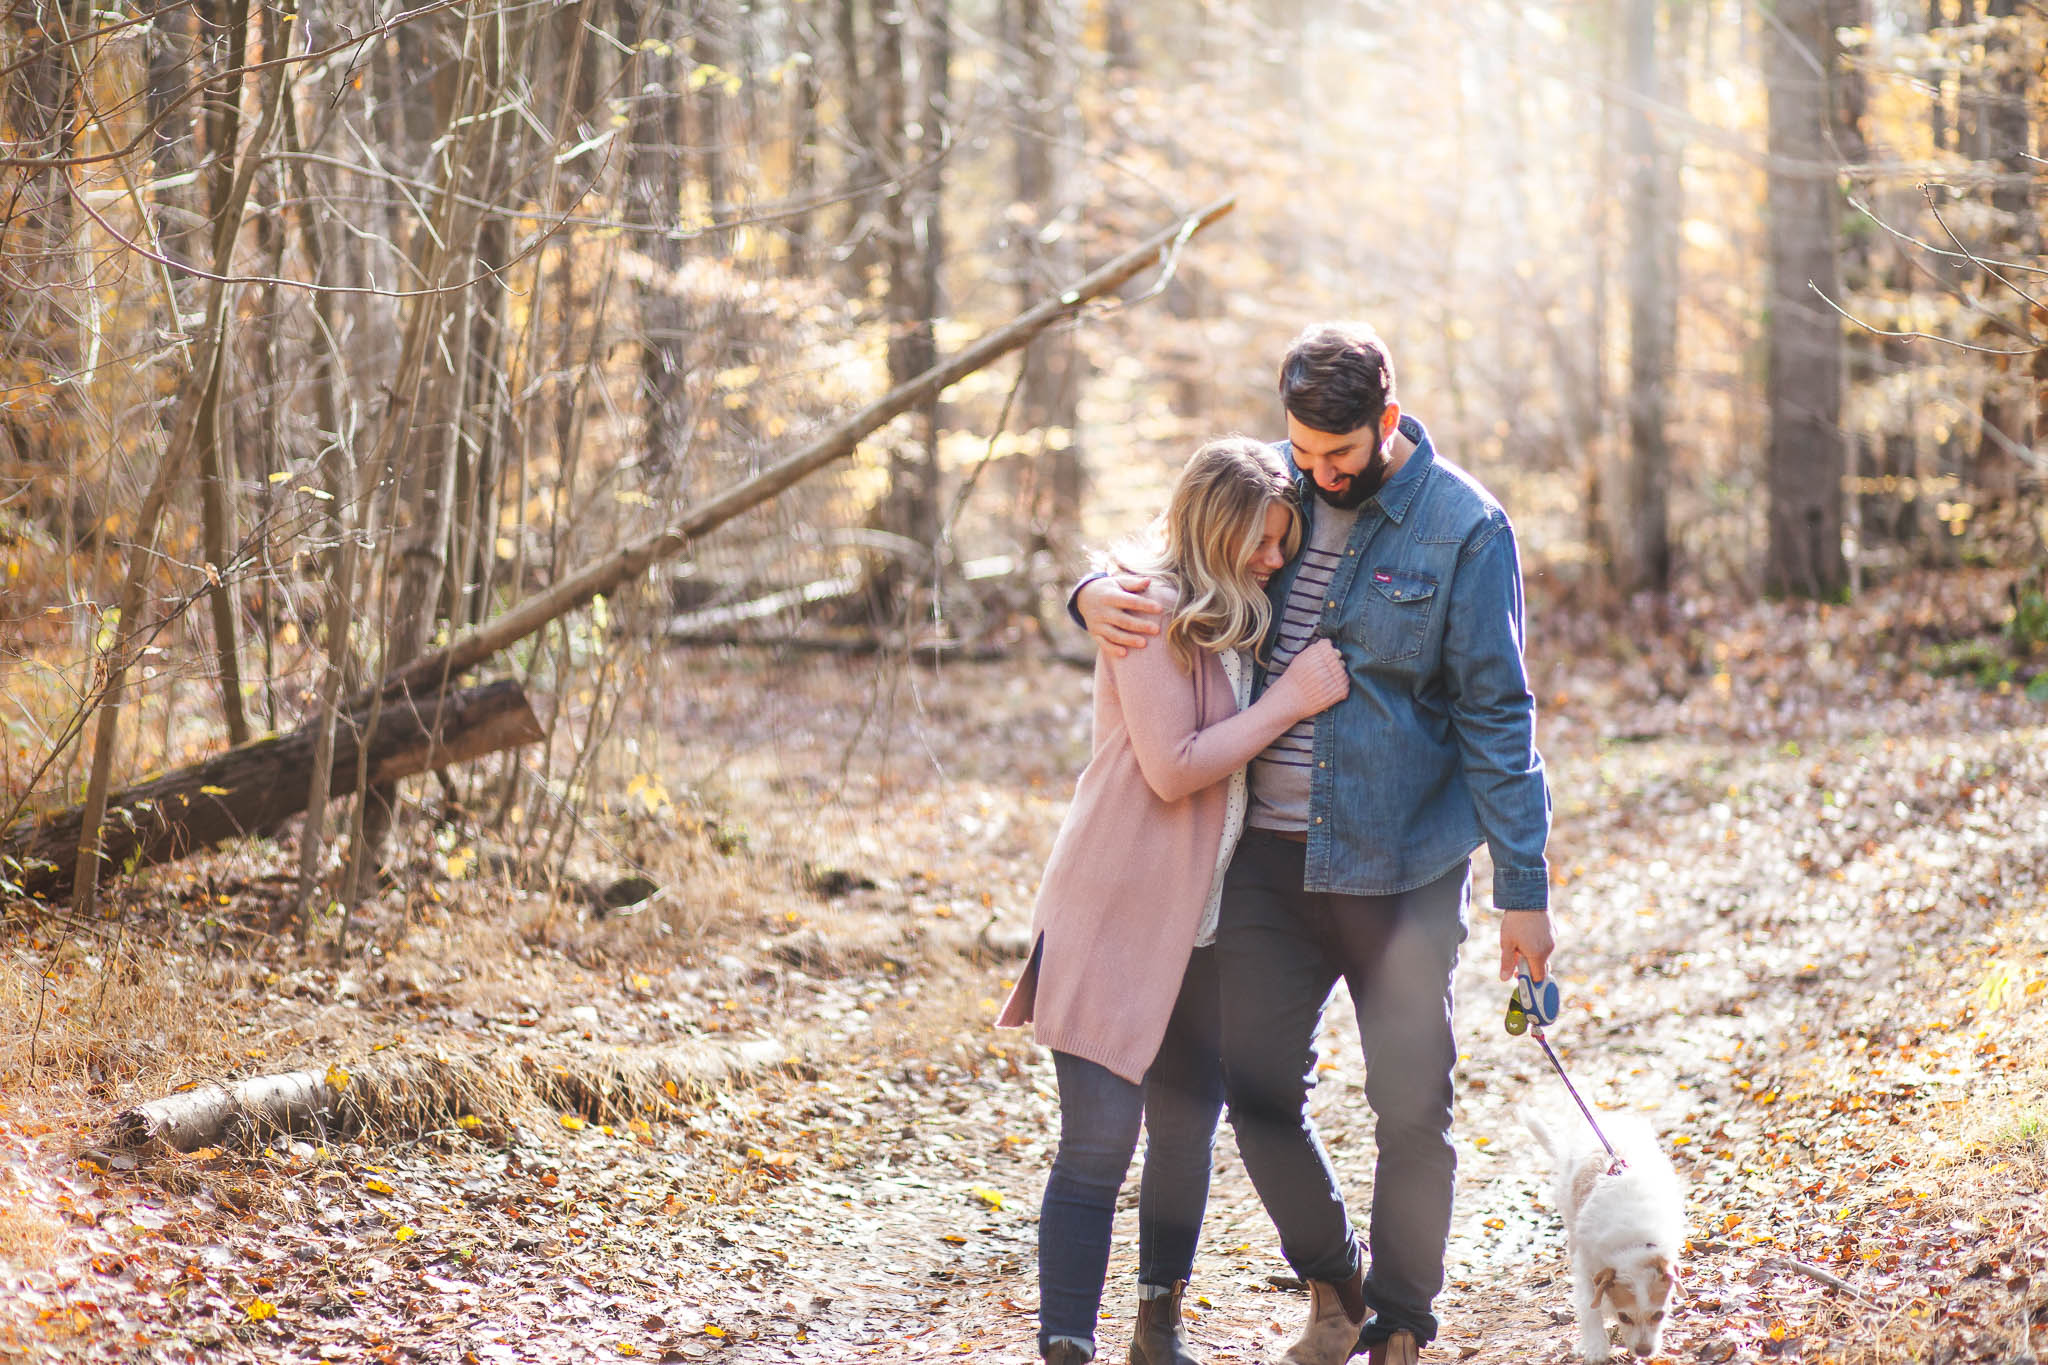 Amy D Photography- Barrie Wedding Photography- Engagement Session- Fall Engagement Session- Engagement Session with Dog- Engagement Session Ideas- Amy D photography (10 of 92).jpg